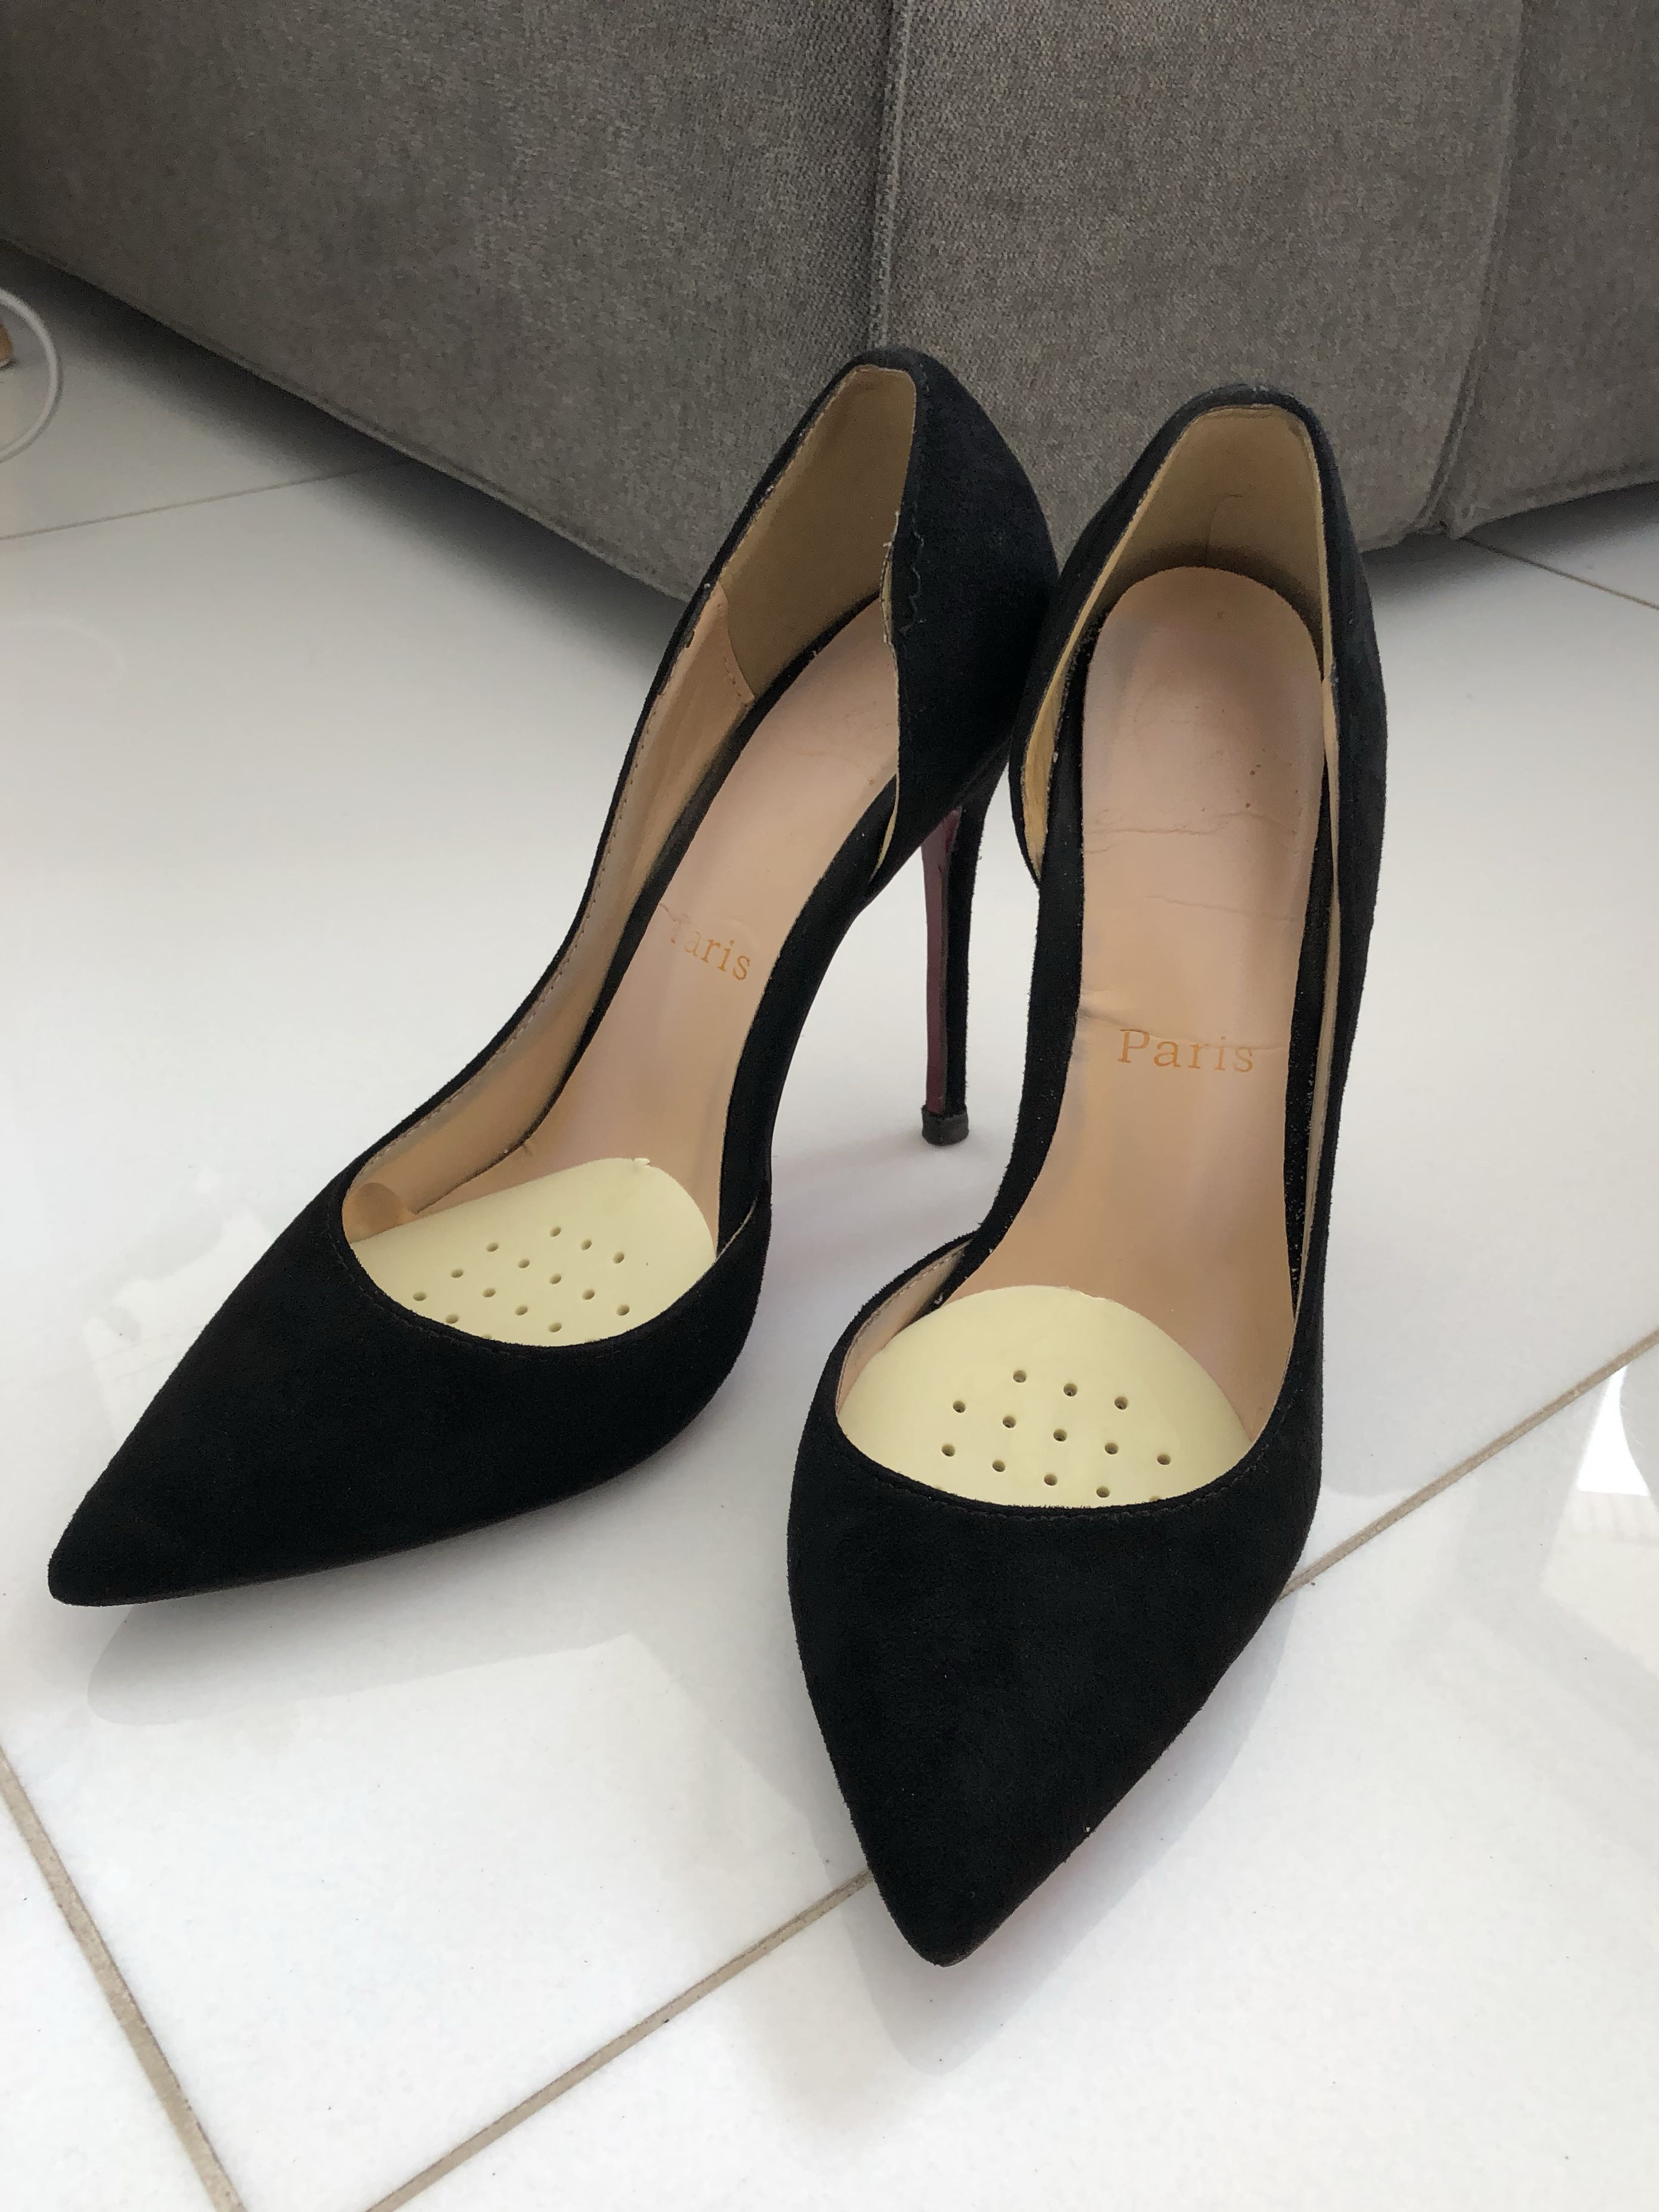 official photos e8fb2 5c596 Louboutin style black suede Kate heels